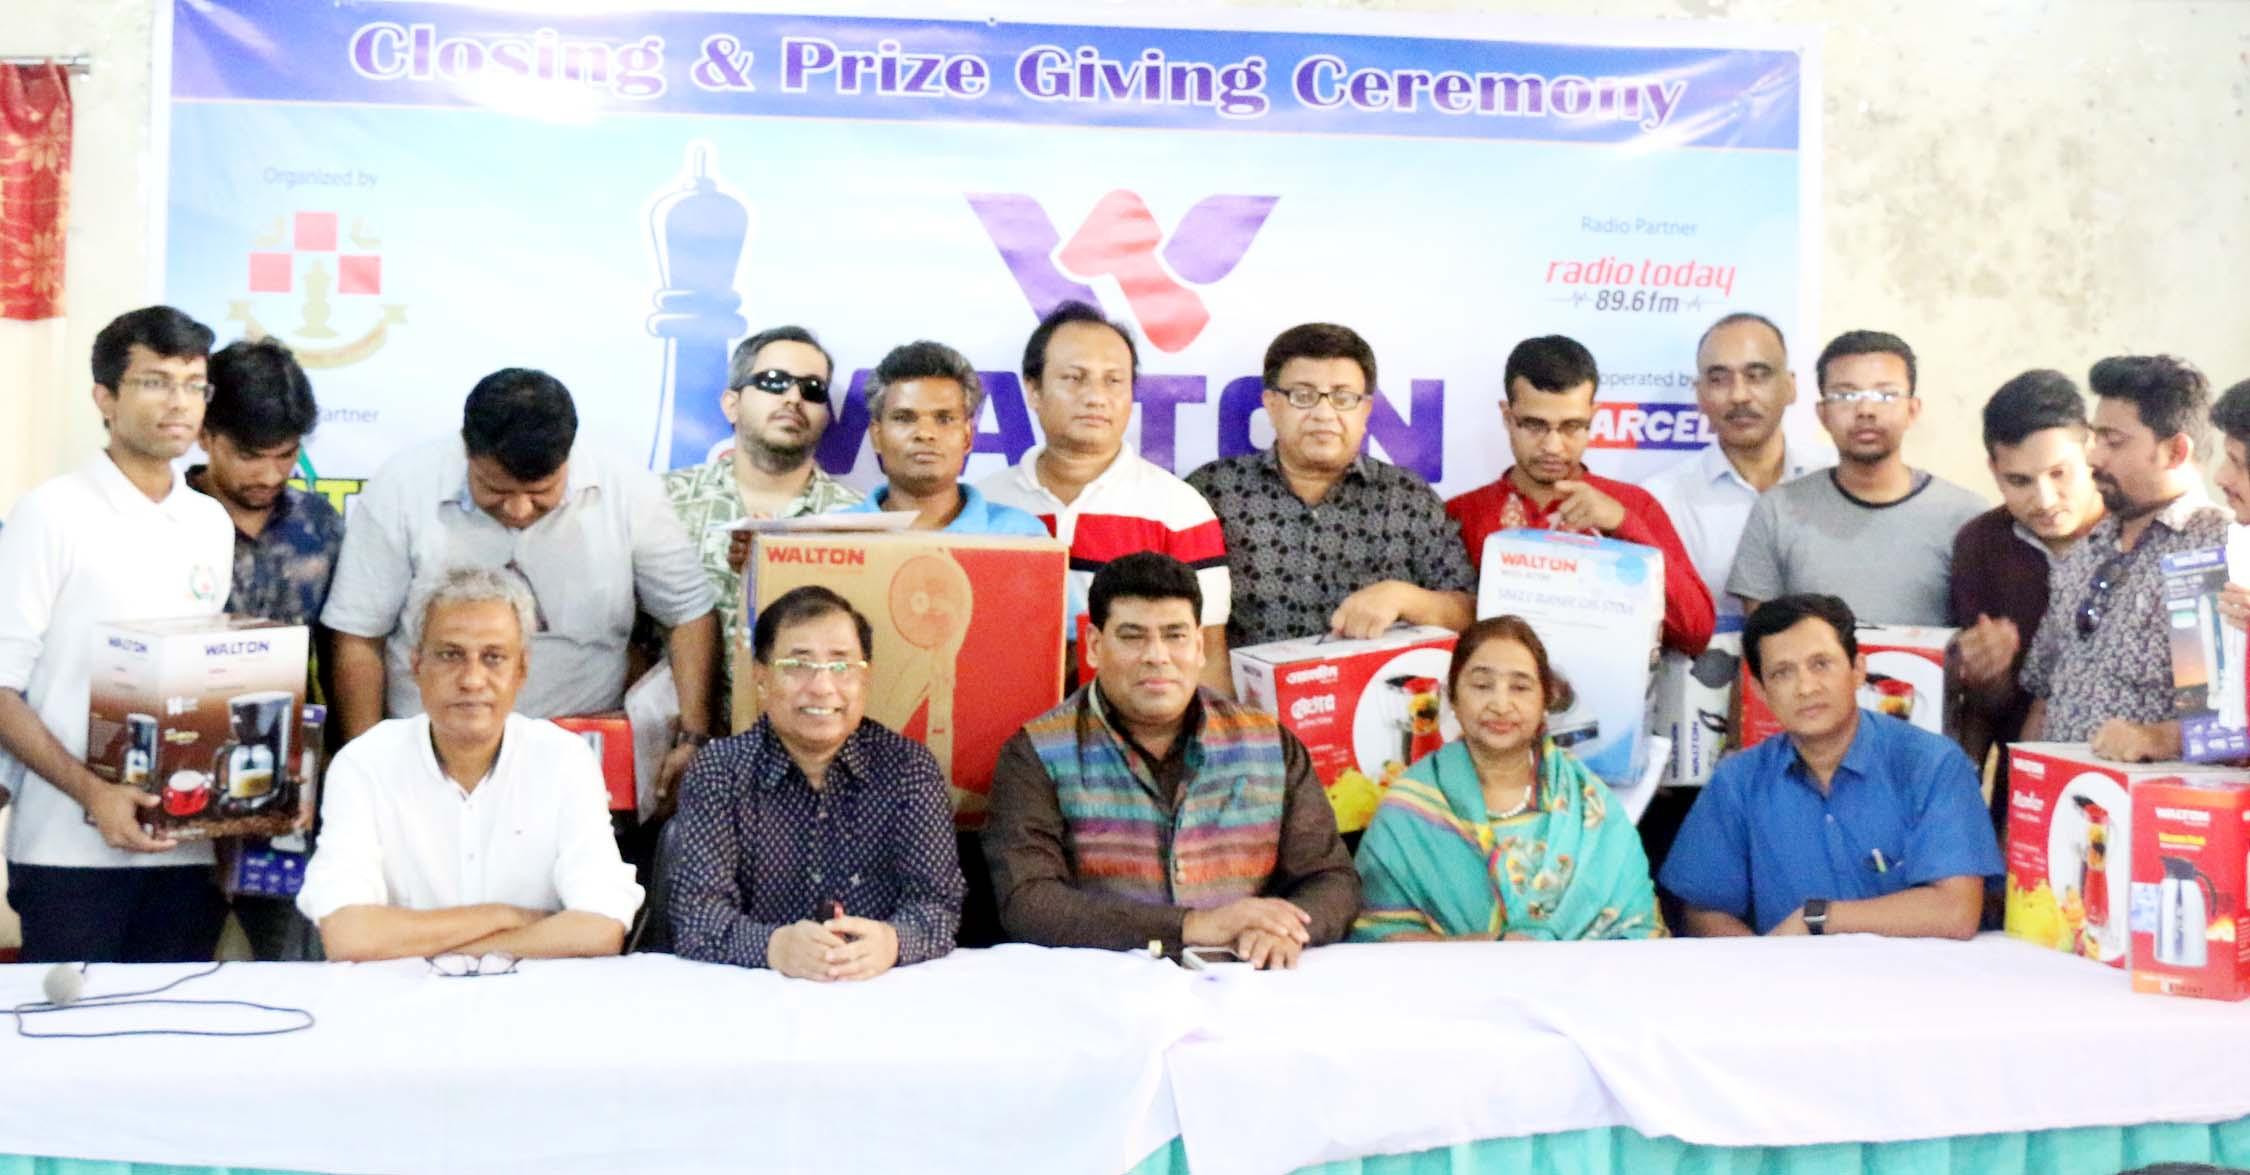 The winners of the Walton Metropolis FIDE Rating Chess Tournament with the chief guest Senior Operative Director (Head of Games & Sports) FM Iqbal Bin Anwar Dawn and the officials of Bangladesh Chess Federation pose for a photo session at Bangladesh Chess Federation hall-room on Thursday.